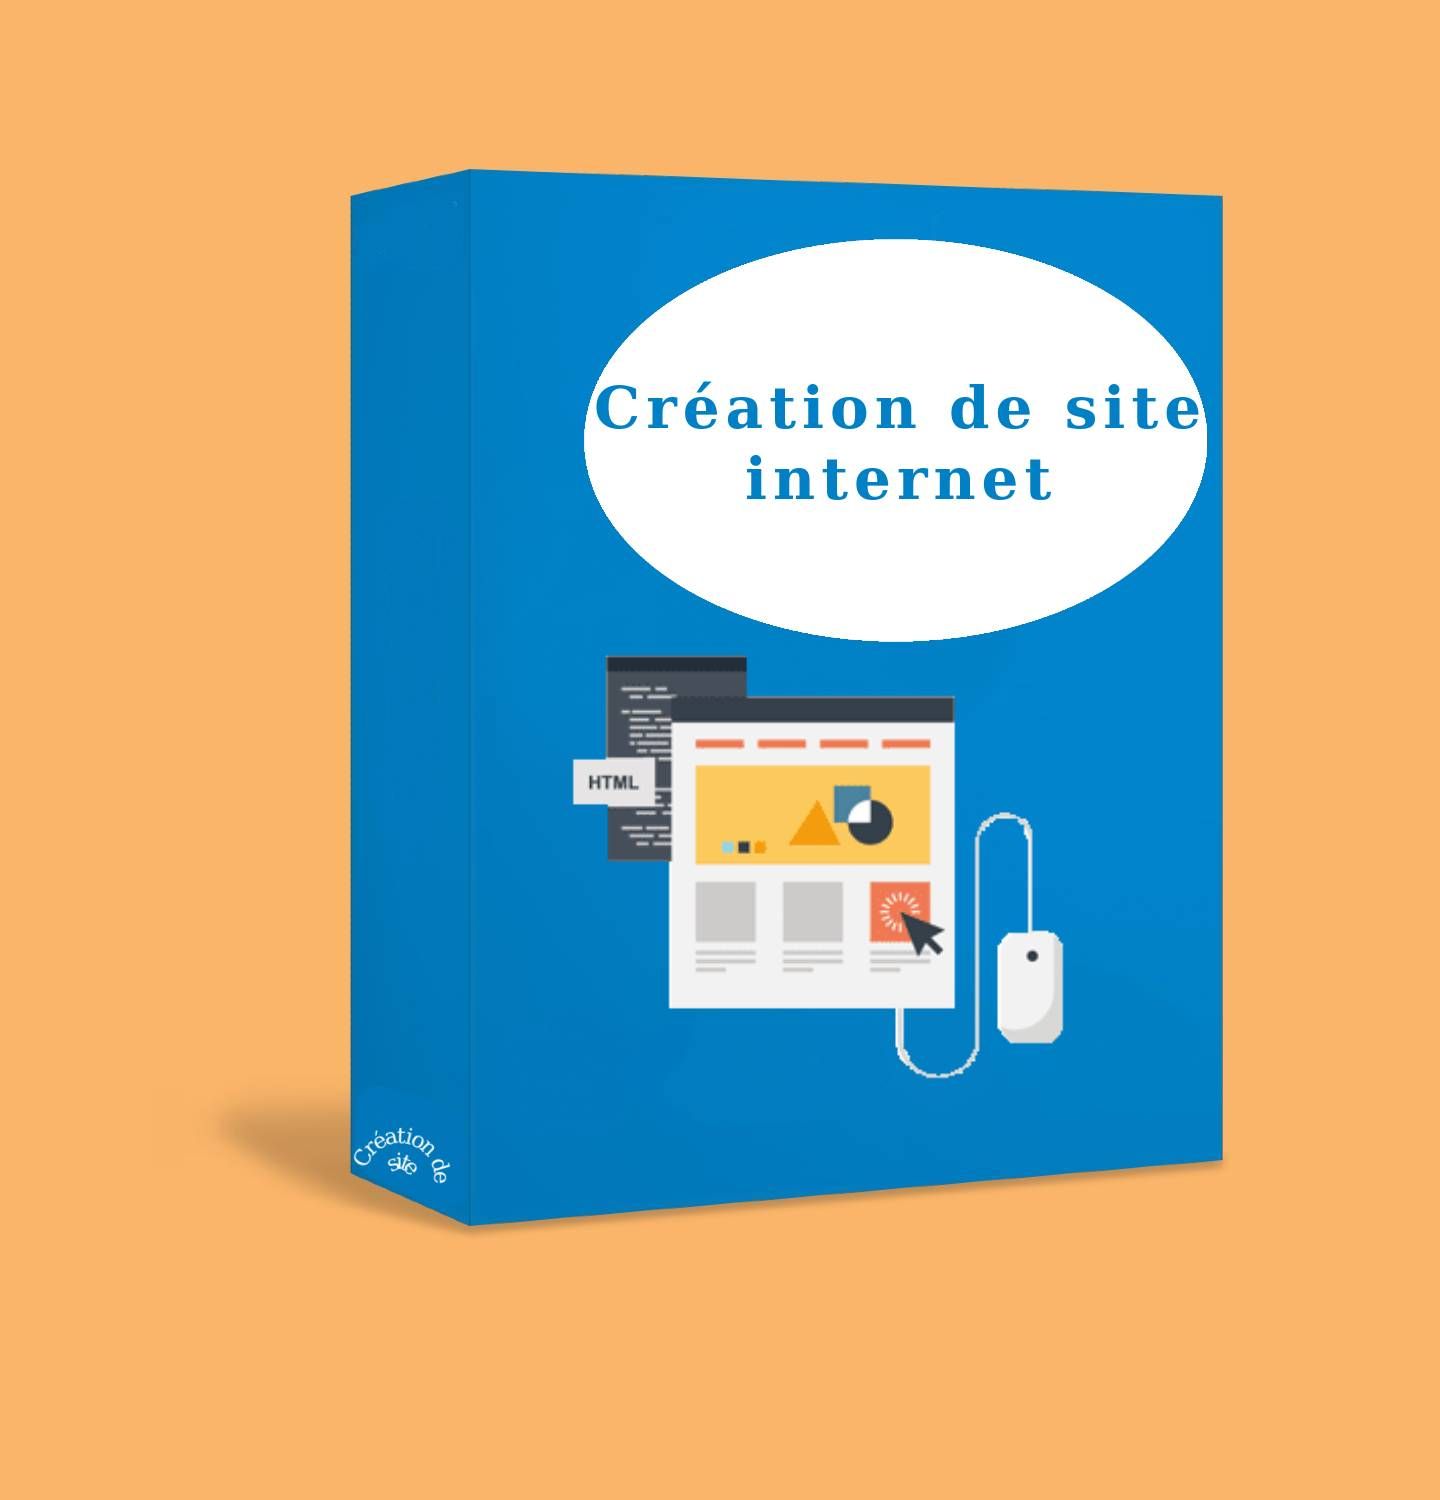 creation de site internet Création de site e-commerce